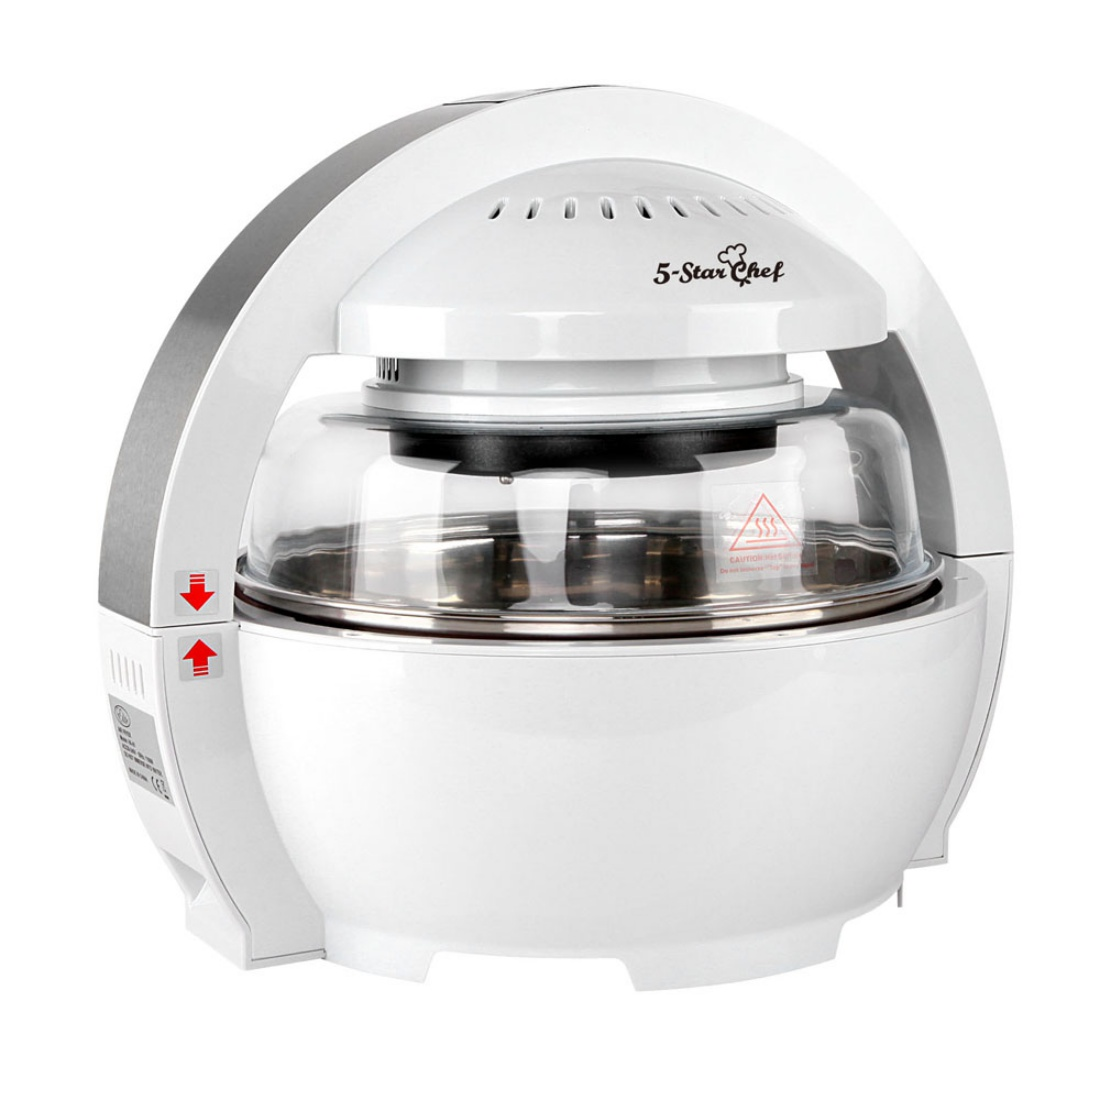 5 Star Chef 13L Air Fryer - White 1300W Multifunctional Low Fat Healthy Cooker